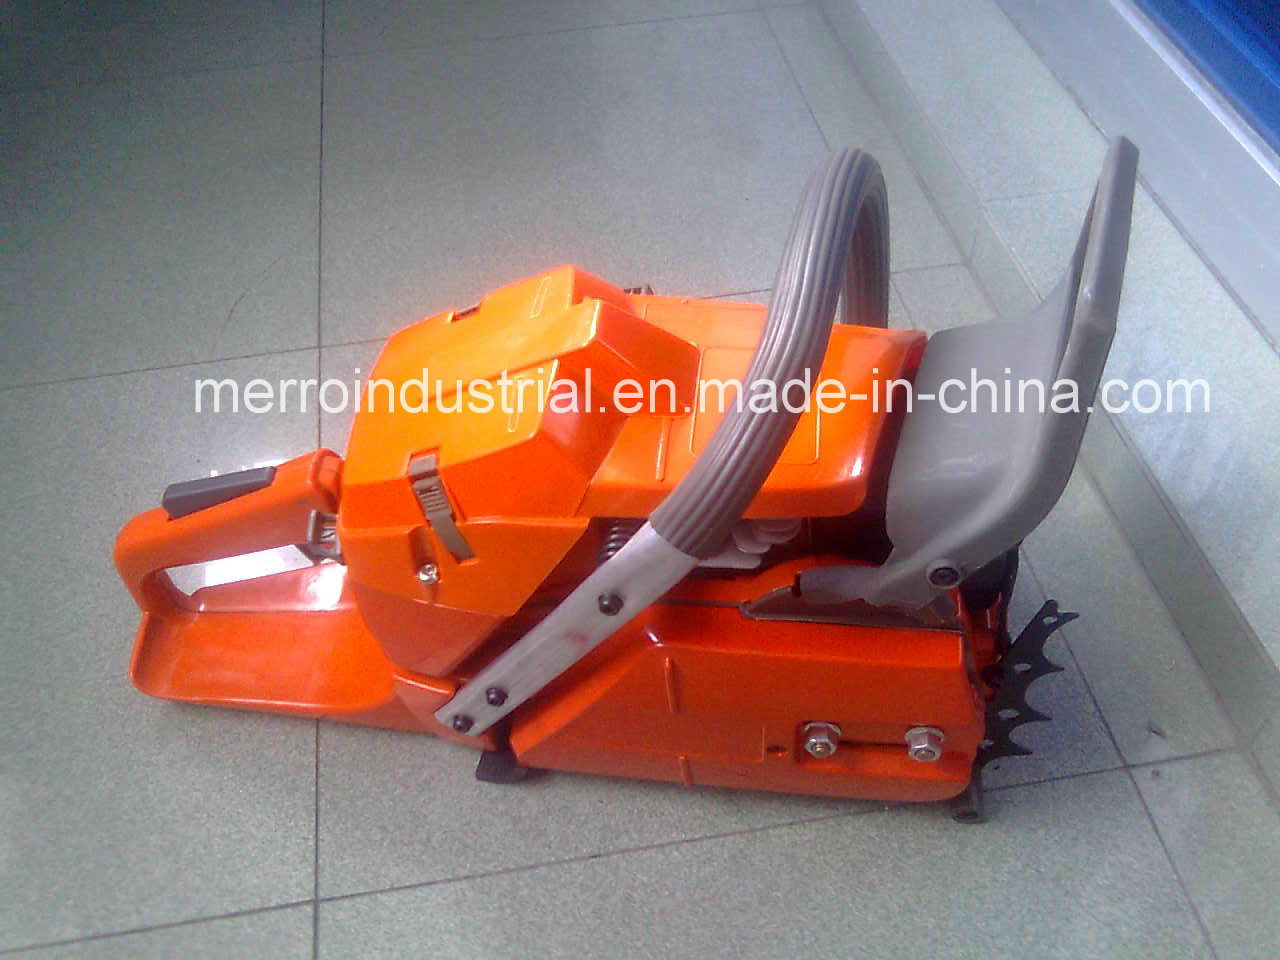 Displacement: 65cc (2.7 KW) for Chainsaw H365